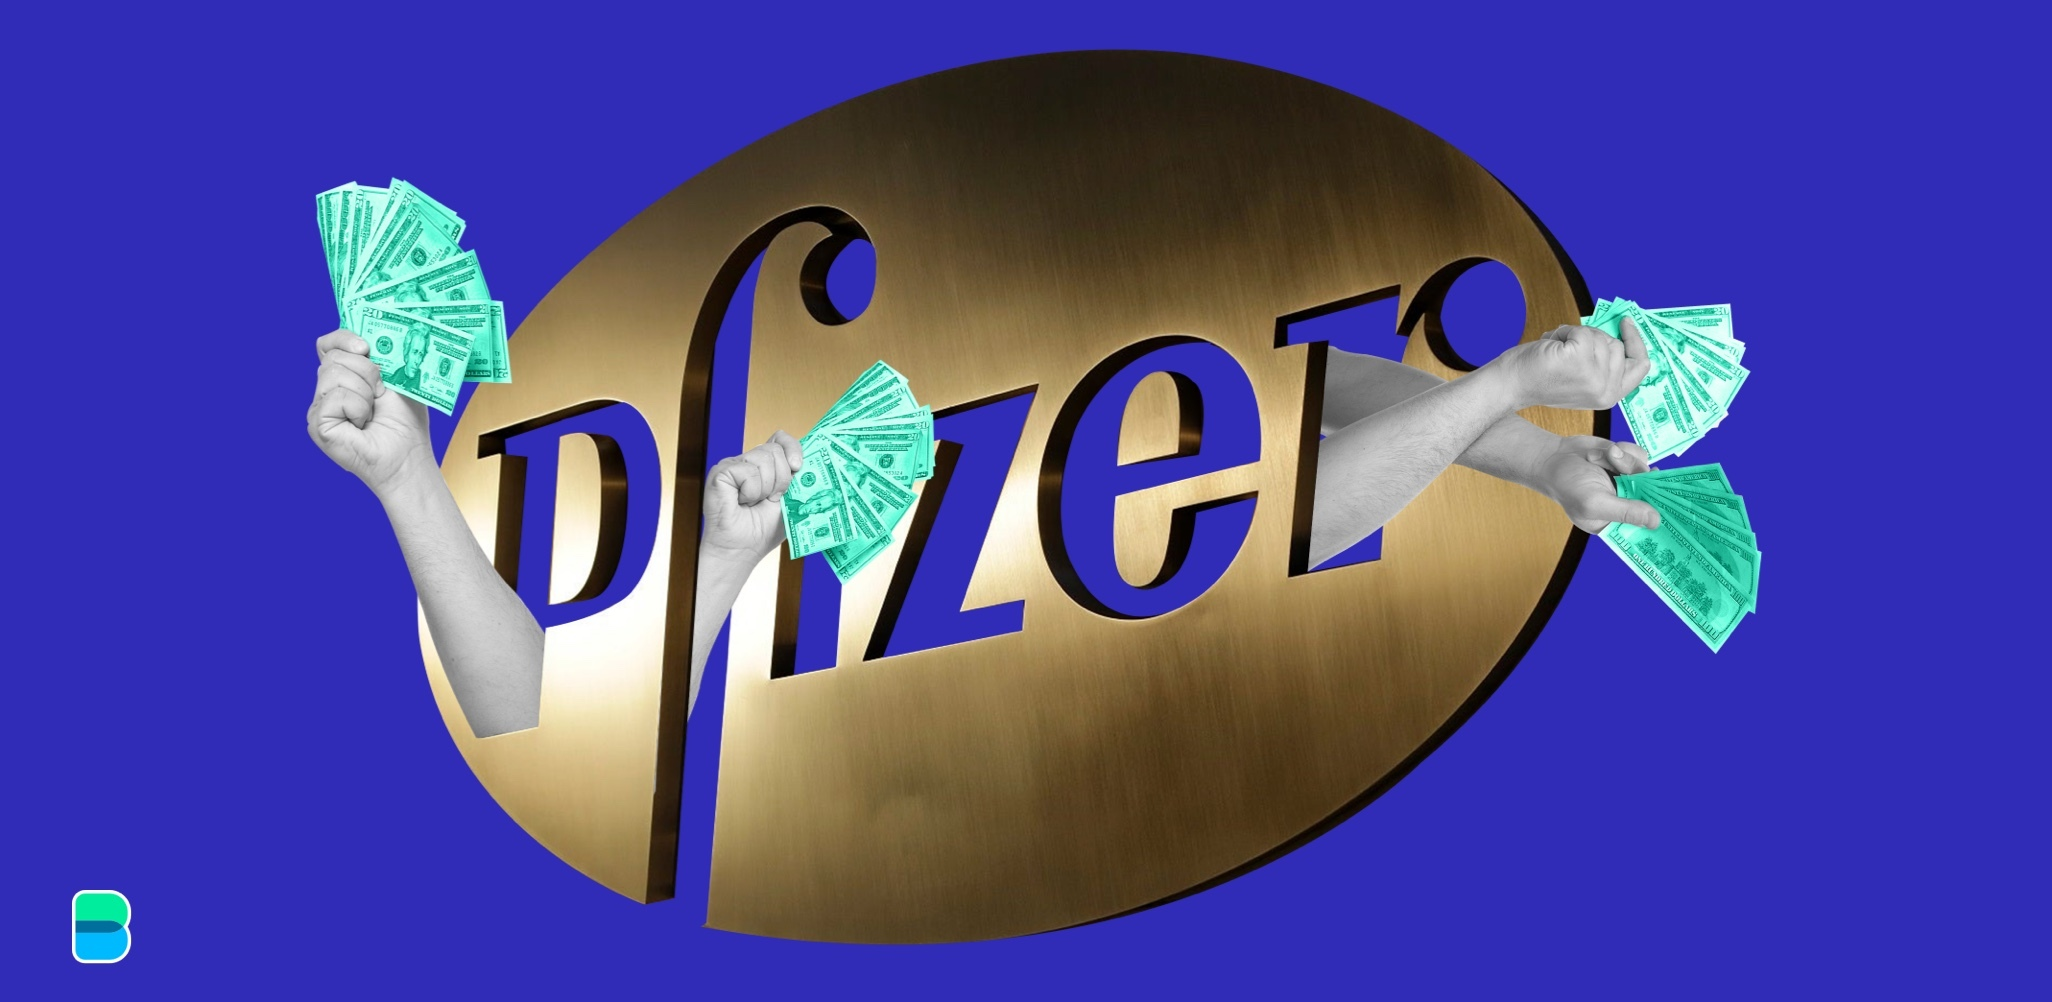 Pfizer is also out spending billions